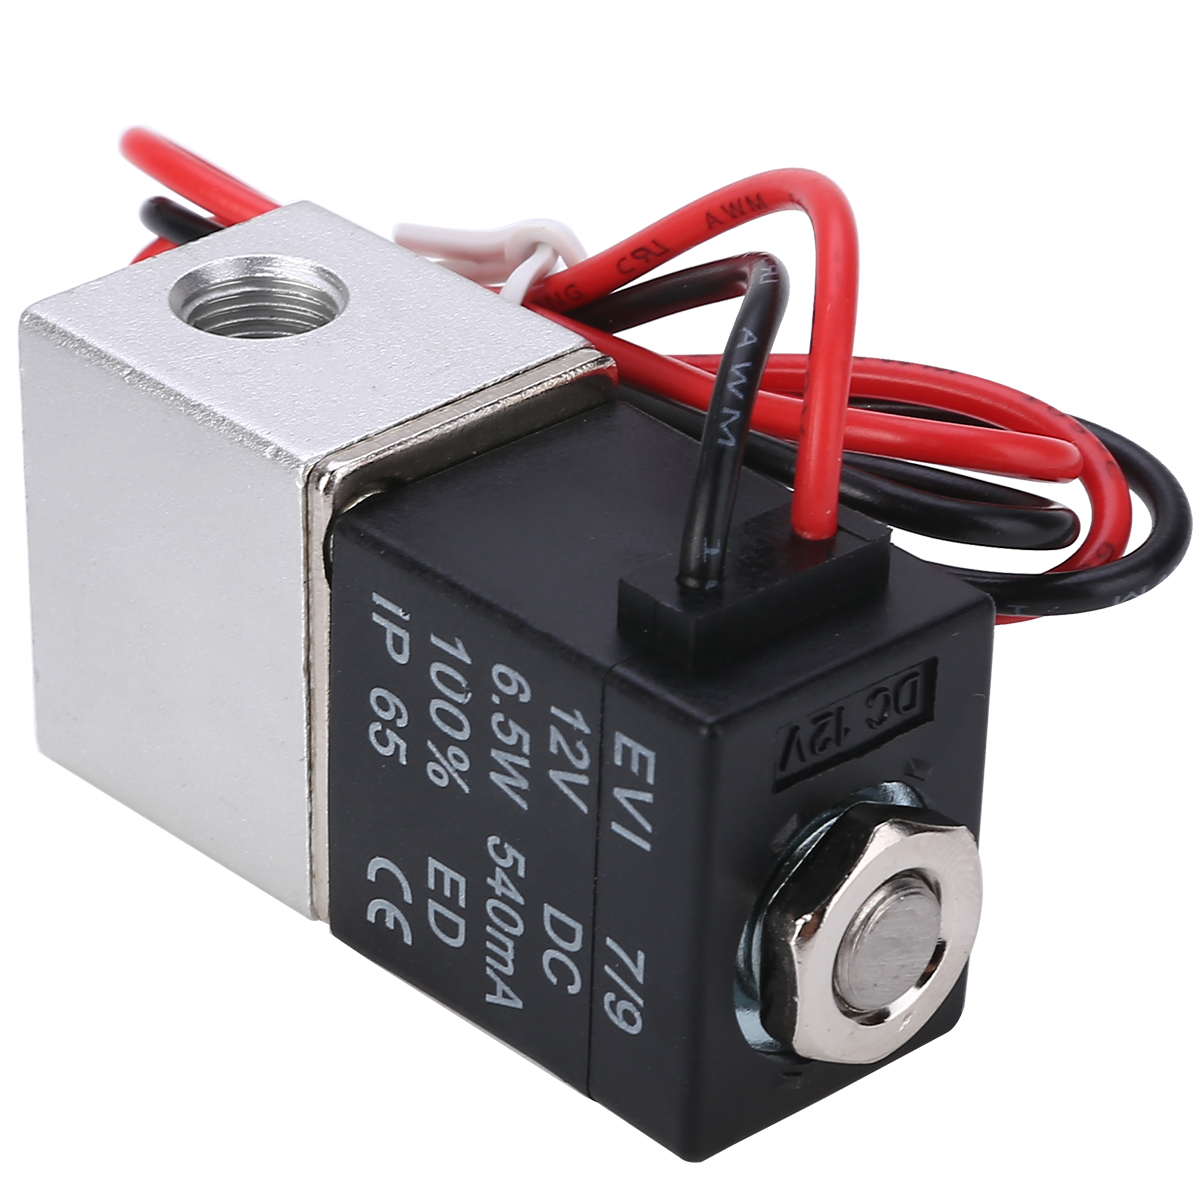 """1Pc Stainless steel Electric Solenoid Valve New Solenoid Valve DC 12V 1/8"""" Electric Solenoid Valve for Water Air"""